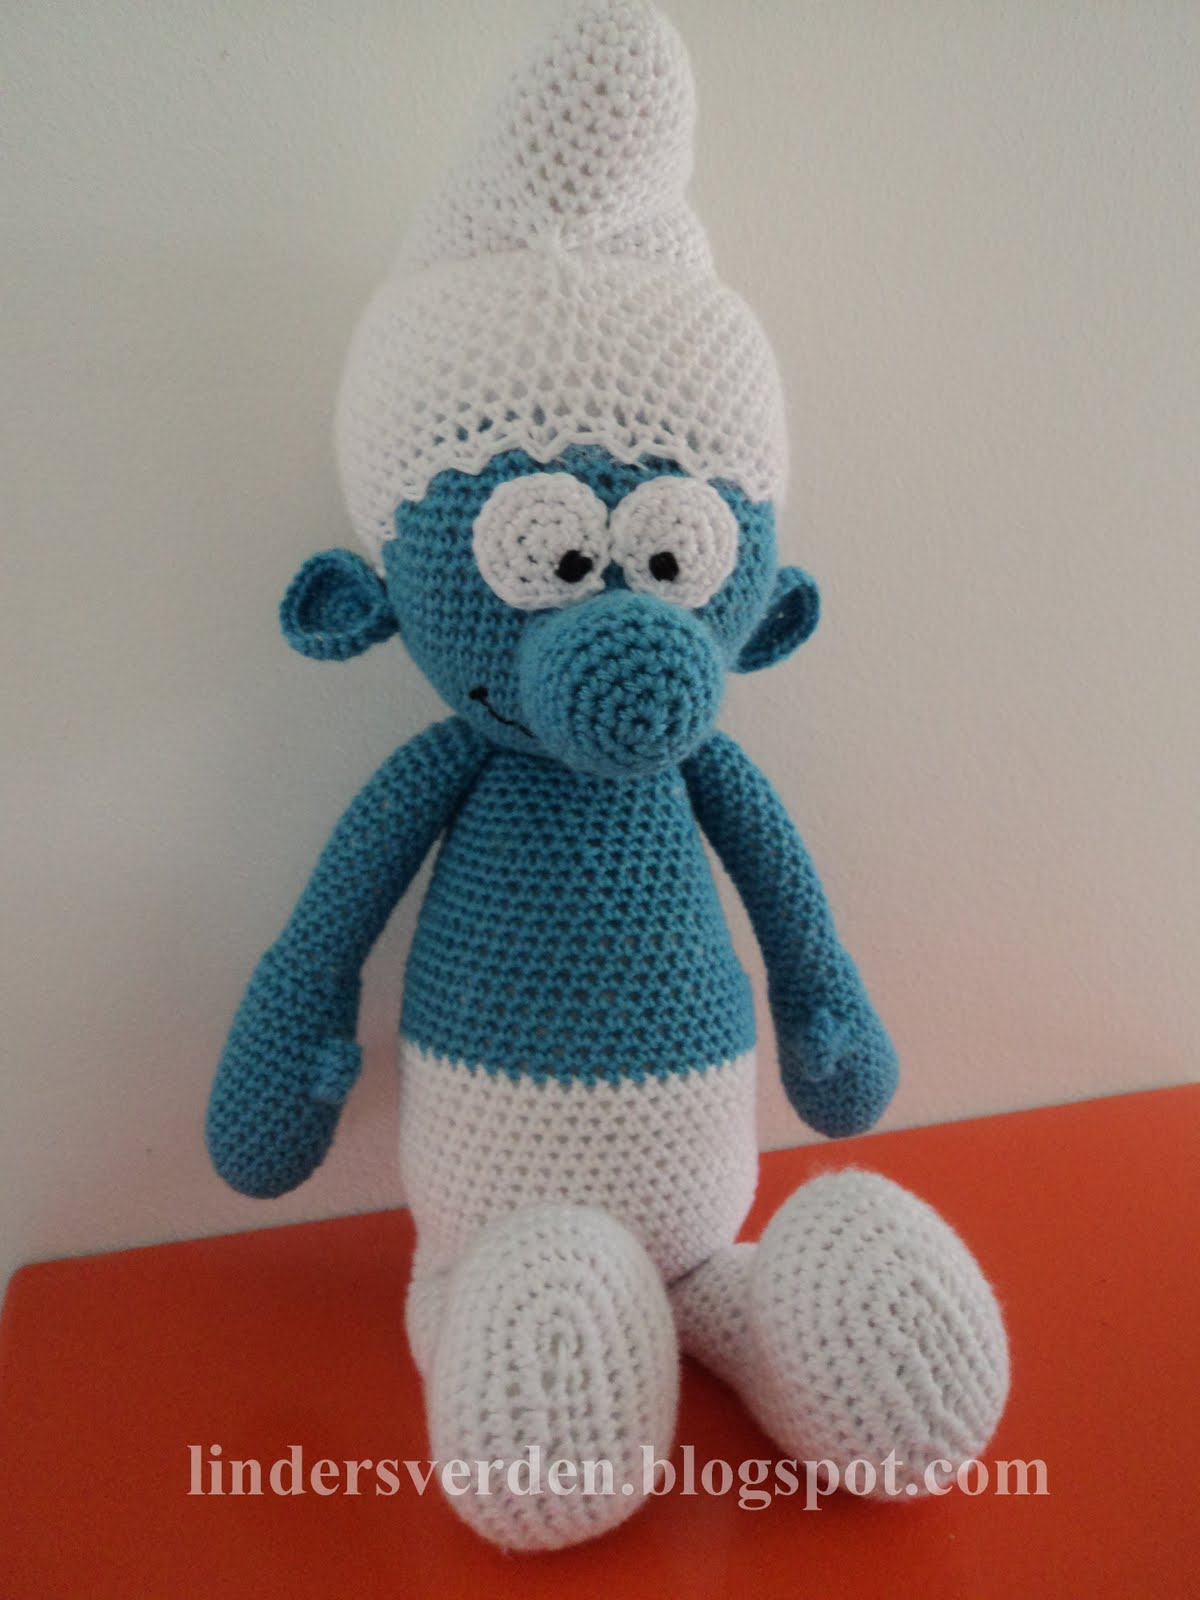 Amigurumi free pattern smurf kalulu for busters mors verden hklet smlf free pattern bankloansurffo Image collections